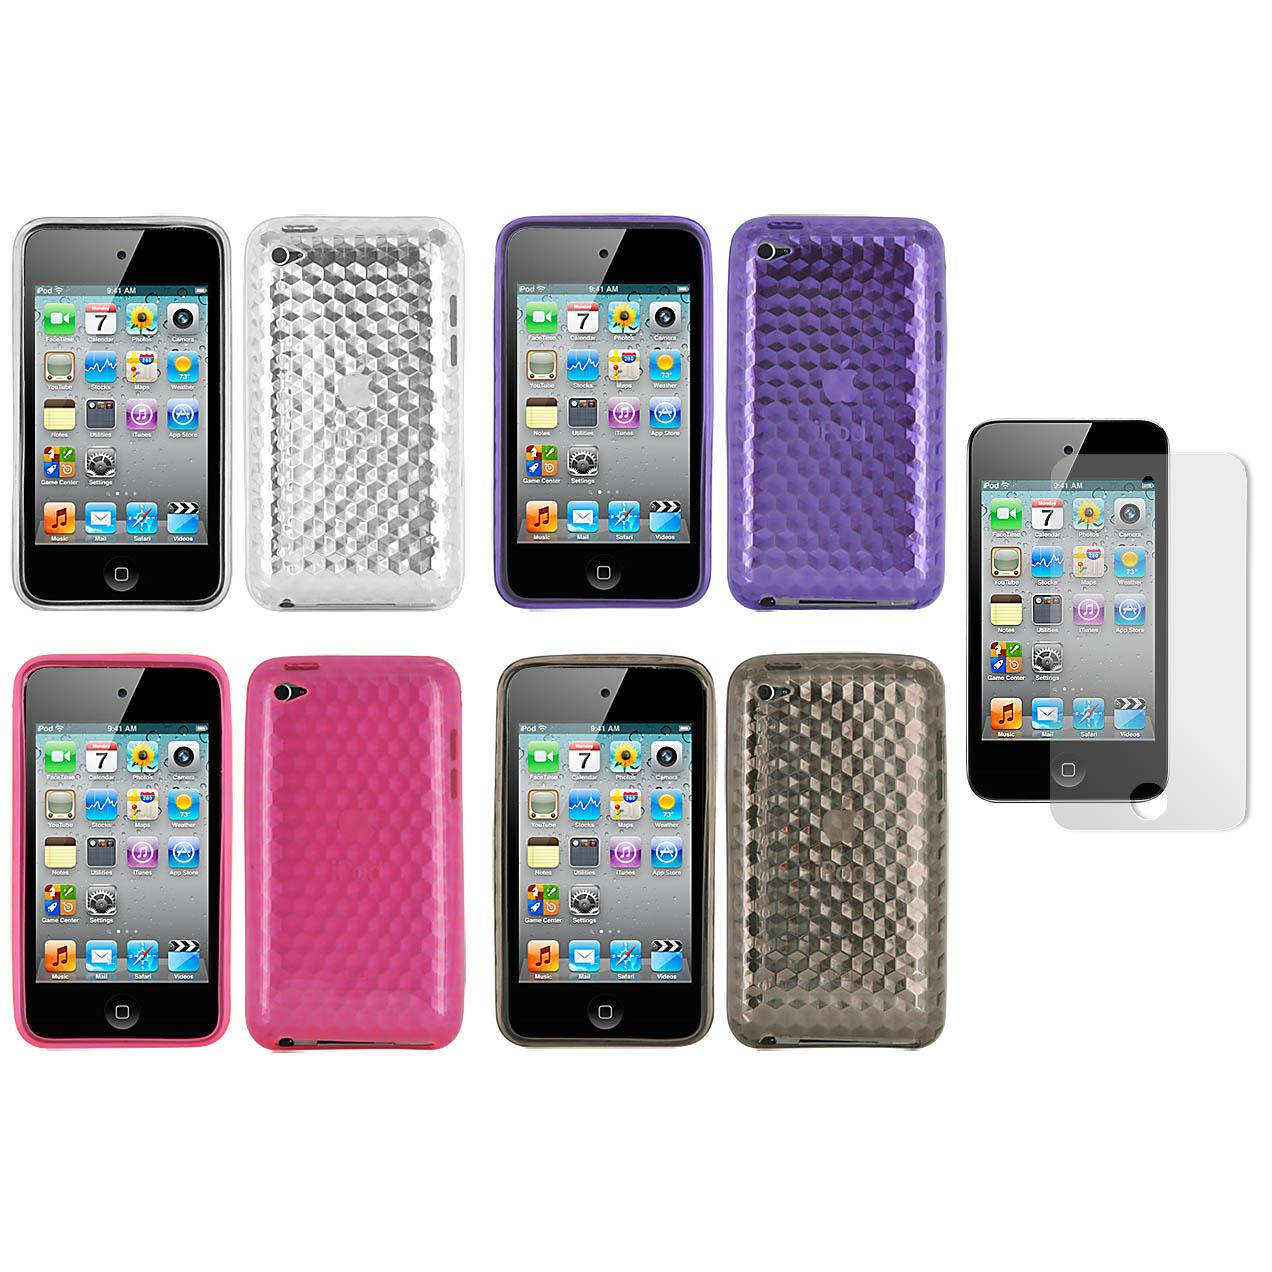 Premium Apple iPod Touch 4th Generation Diamond TPU Case with Screen Protector